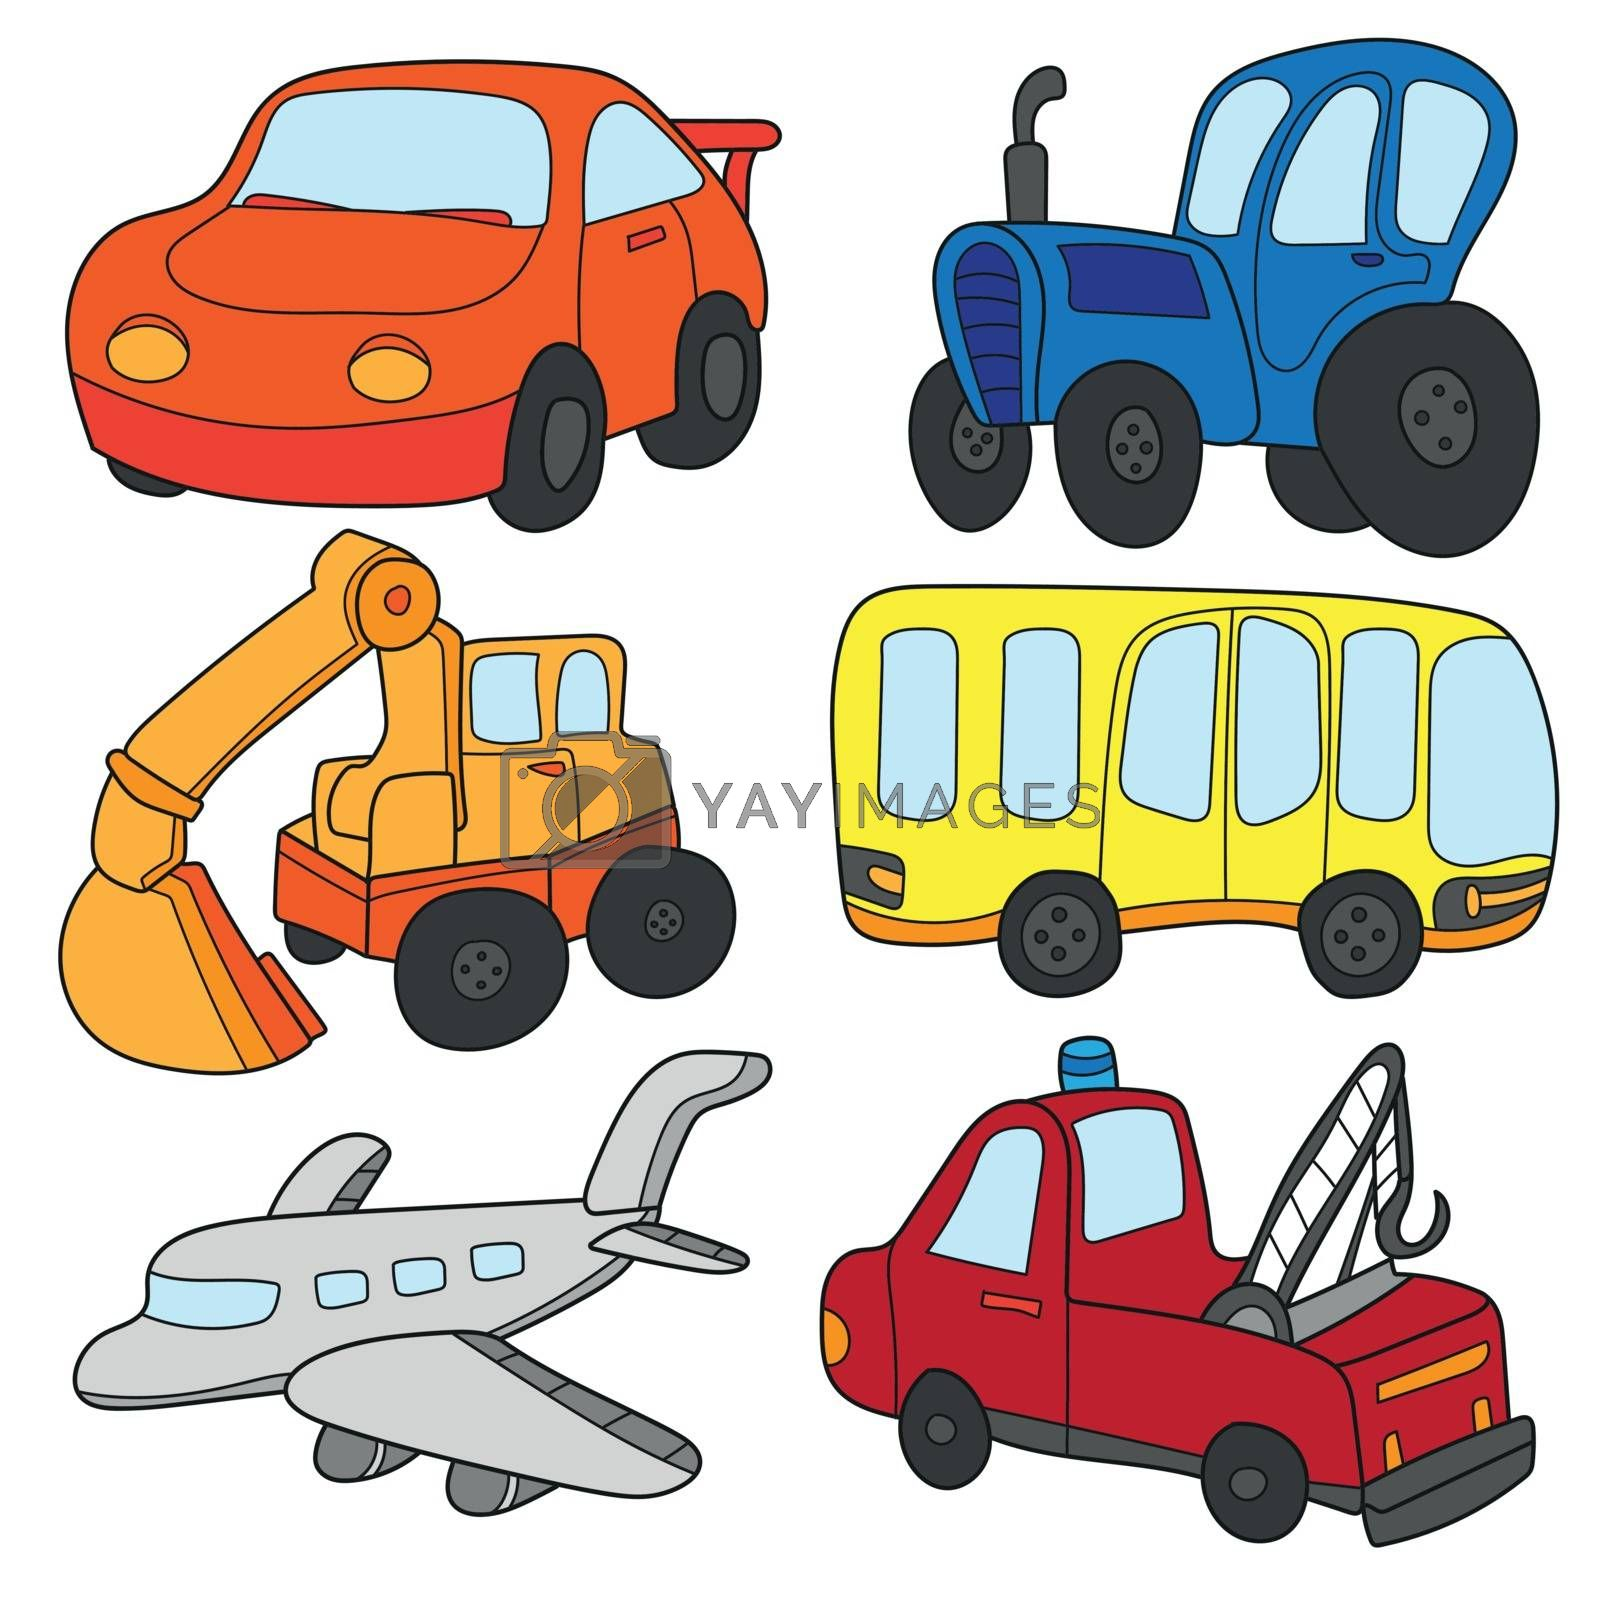 Cartoon cars collection. Cartoon cars collection. Vector of Transportation theme with Car, truck, bus,plain. A set of cute and colorful icon collection isolated on white background